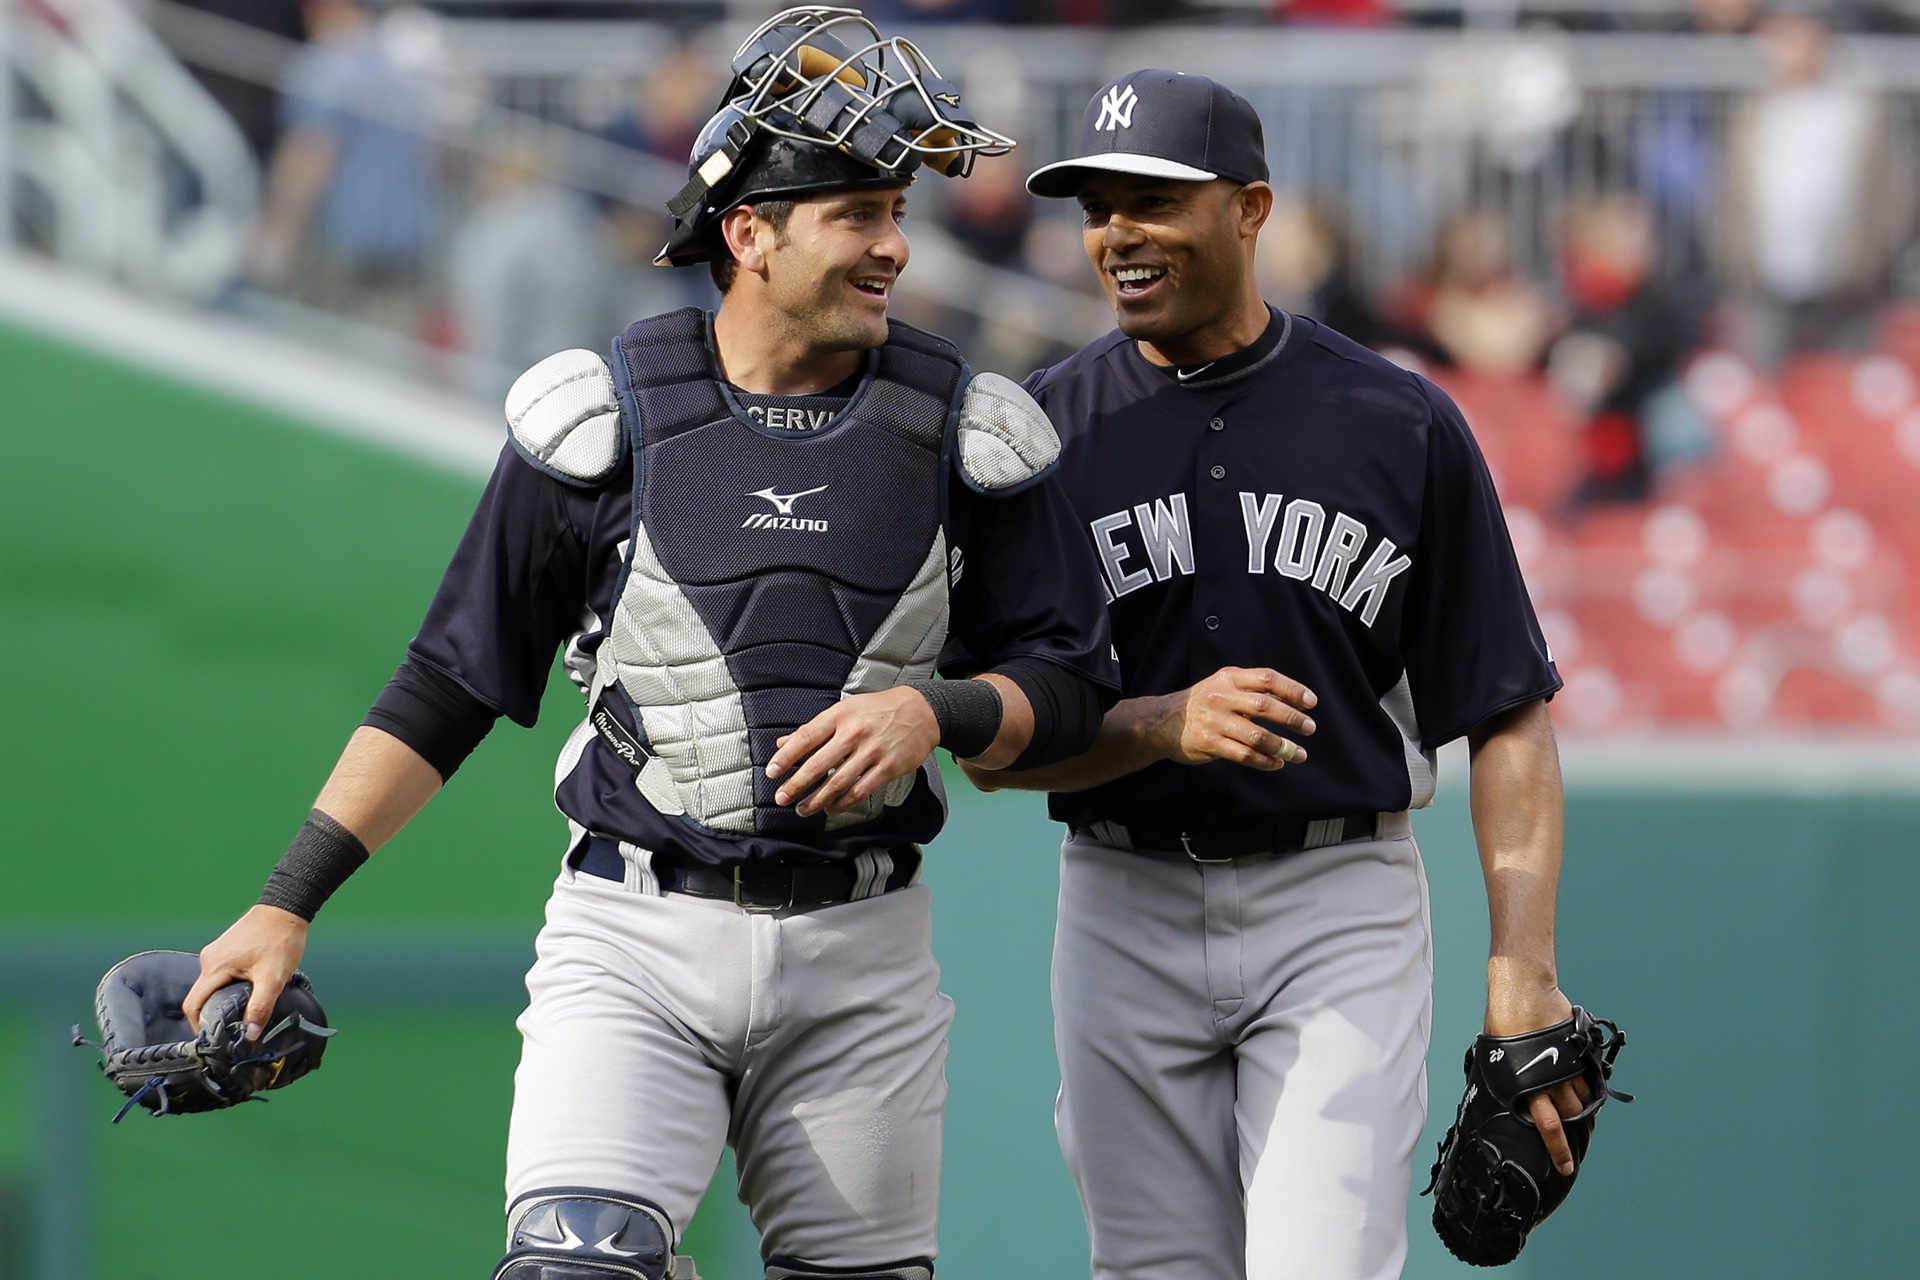 New York Yankees catcher Francisco Cervelli, left, smiles with relief pitcher Mariano Rivera after an exhibition baseball game against the Washington Nationals at Nationals Park, Friday, March 29, 2013, in Washington. The Yankees won 4-2. (AP Photo/Alex Brandon)